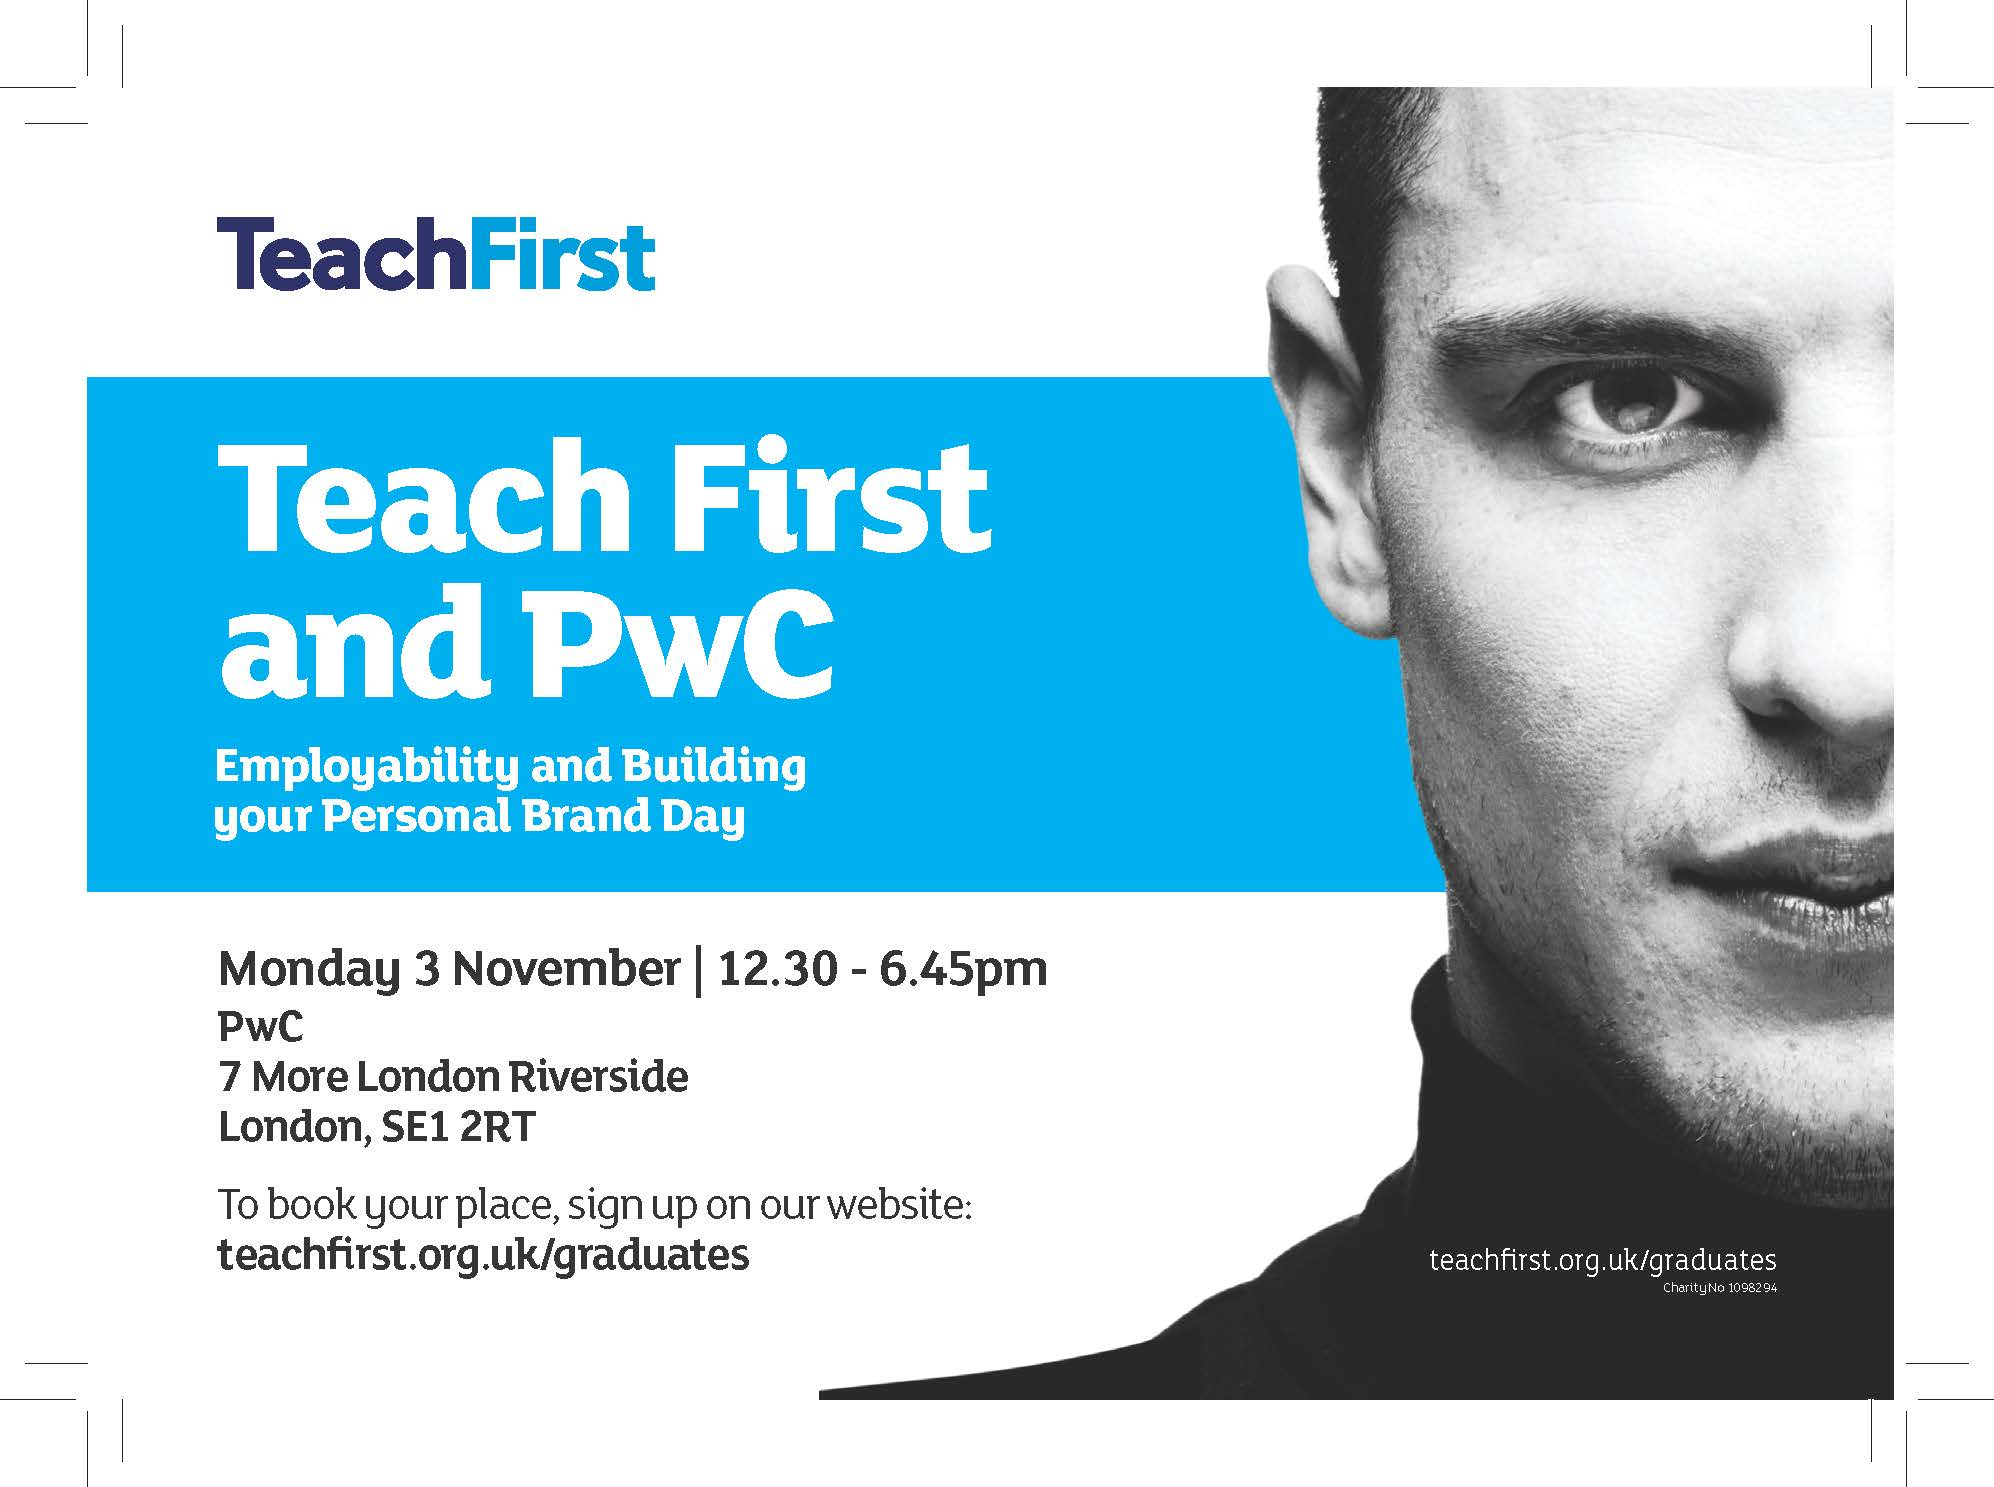 Teach First And Pwc Employability And Building Your